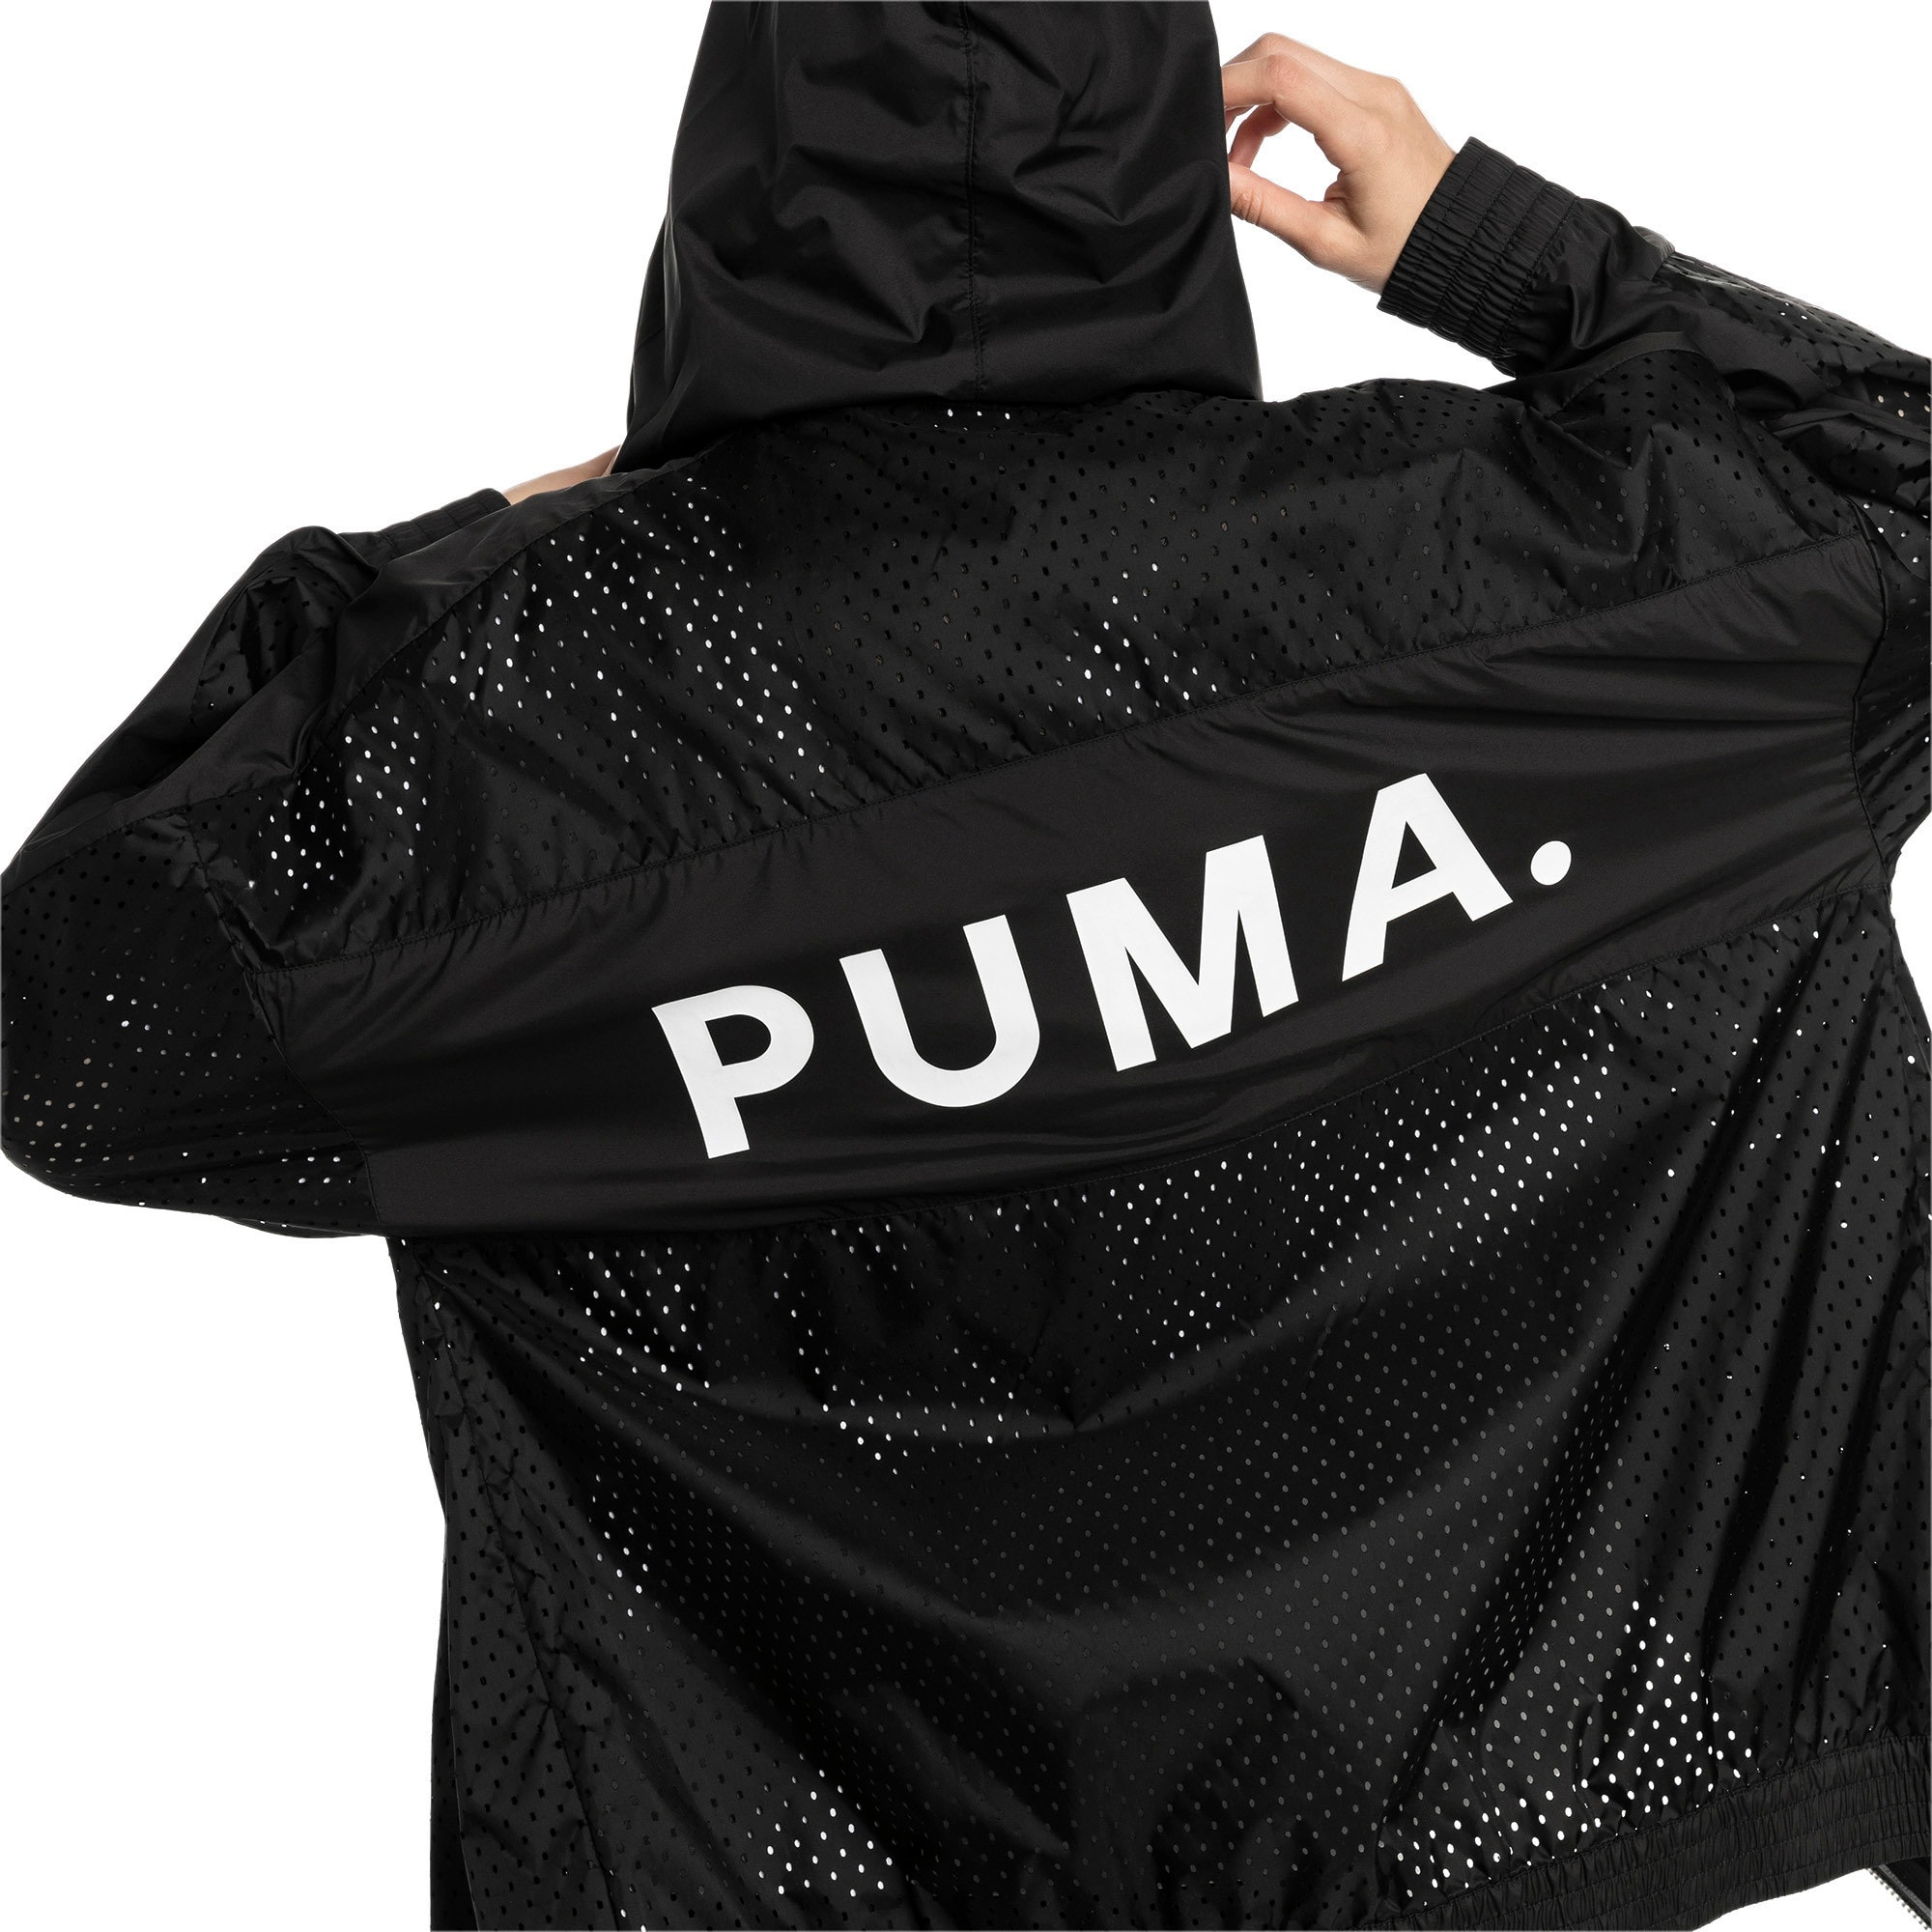 Thumbnail 3 of Chase Woven Full Zip Hooded Women's Jacket, Puma Black, medium-IND